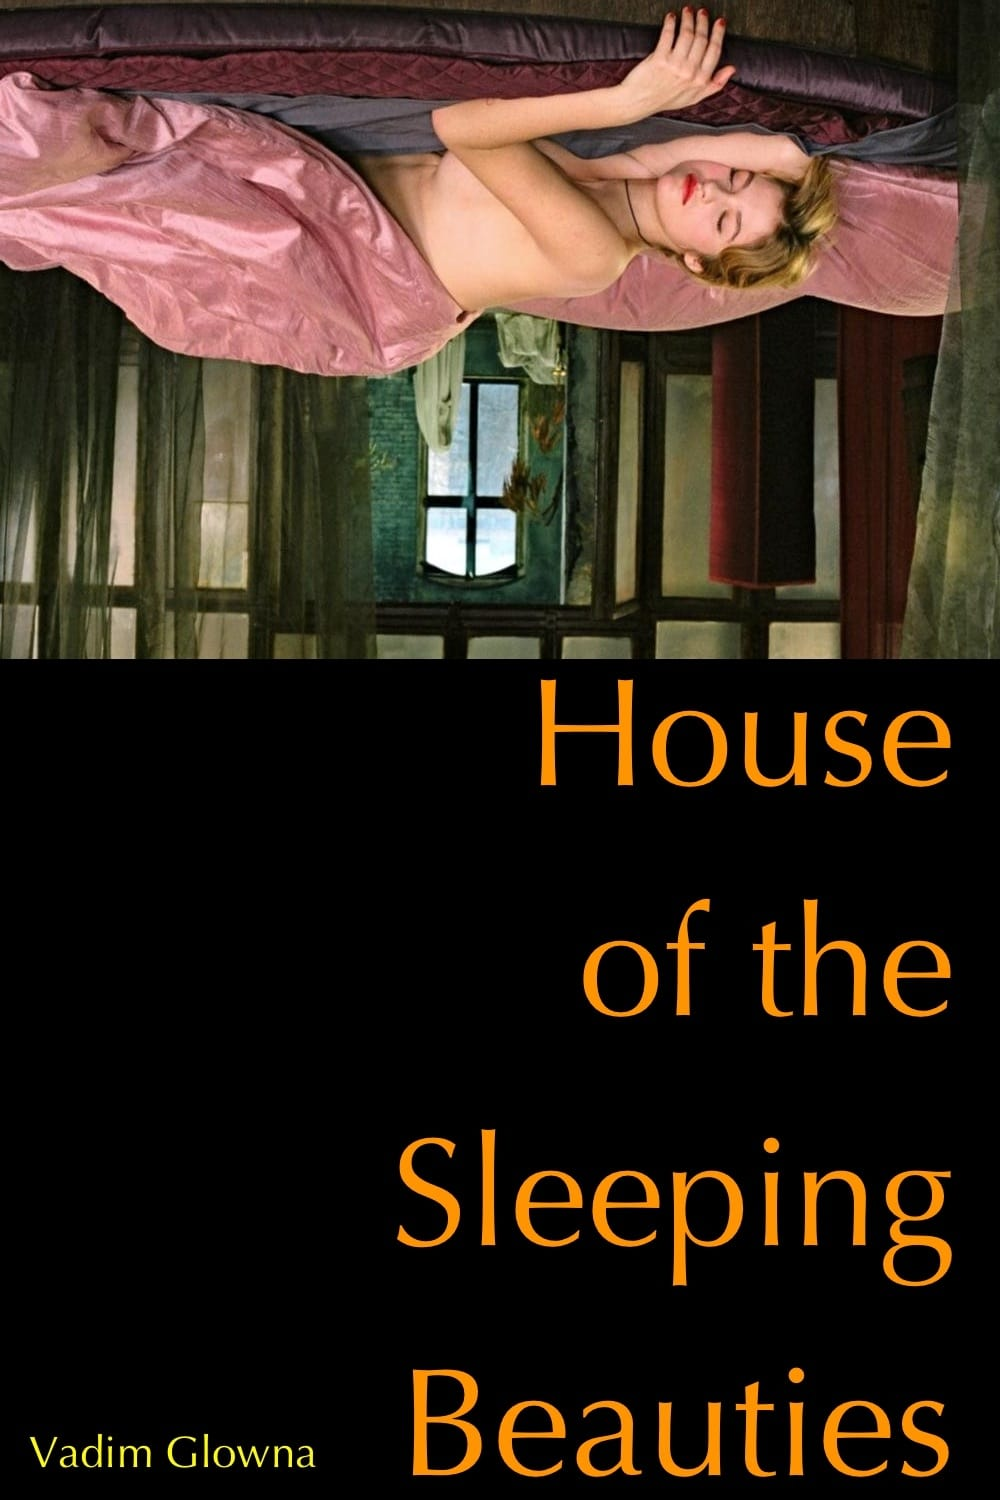 House of the Sleeping Beauties (2006)